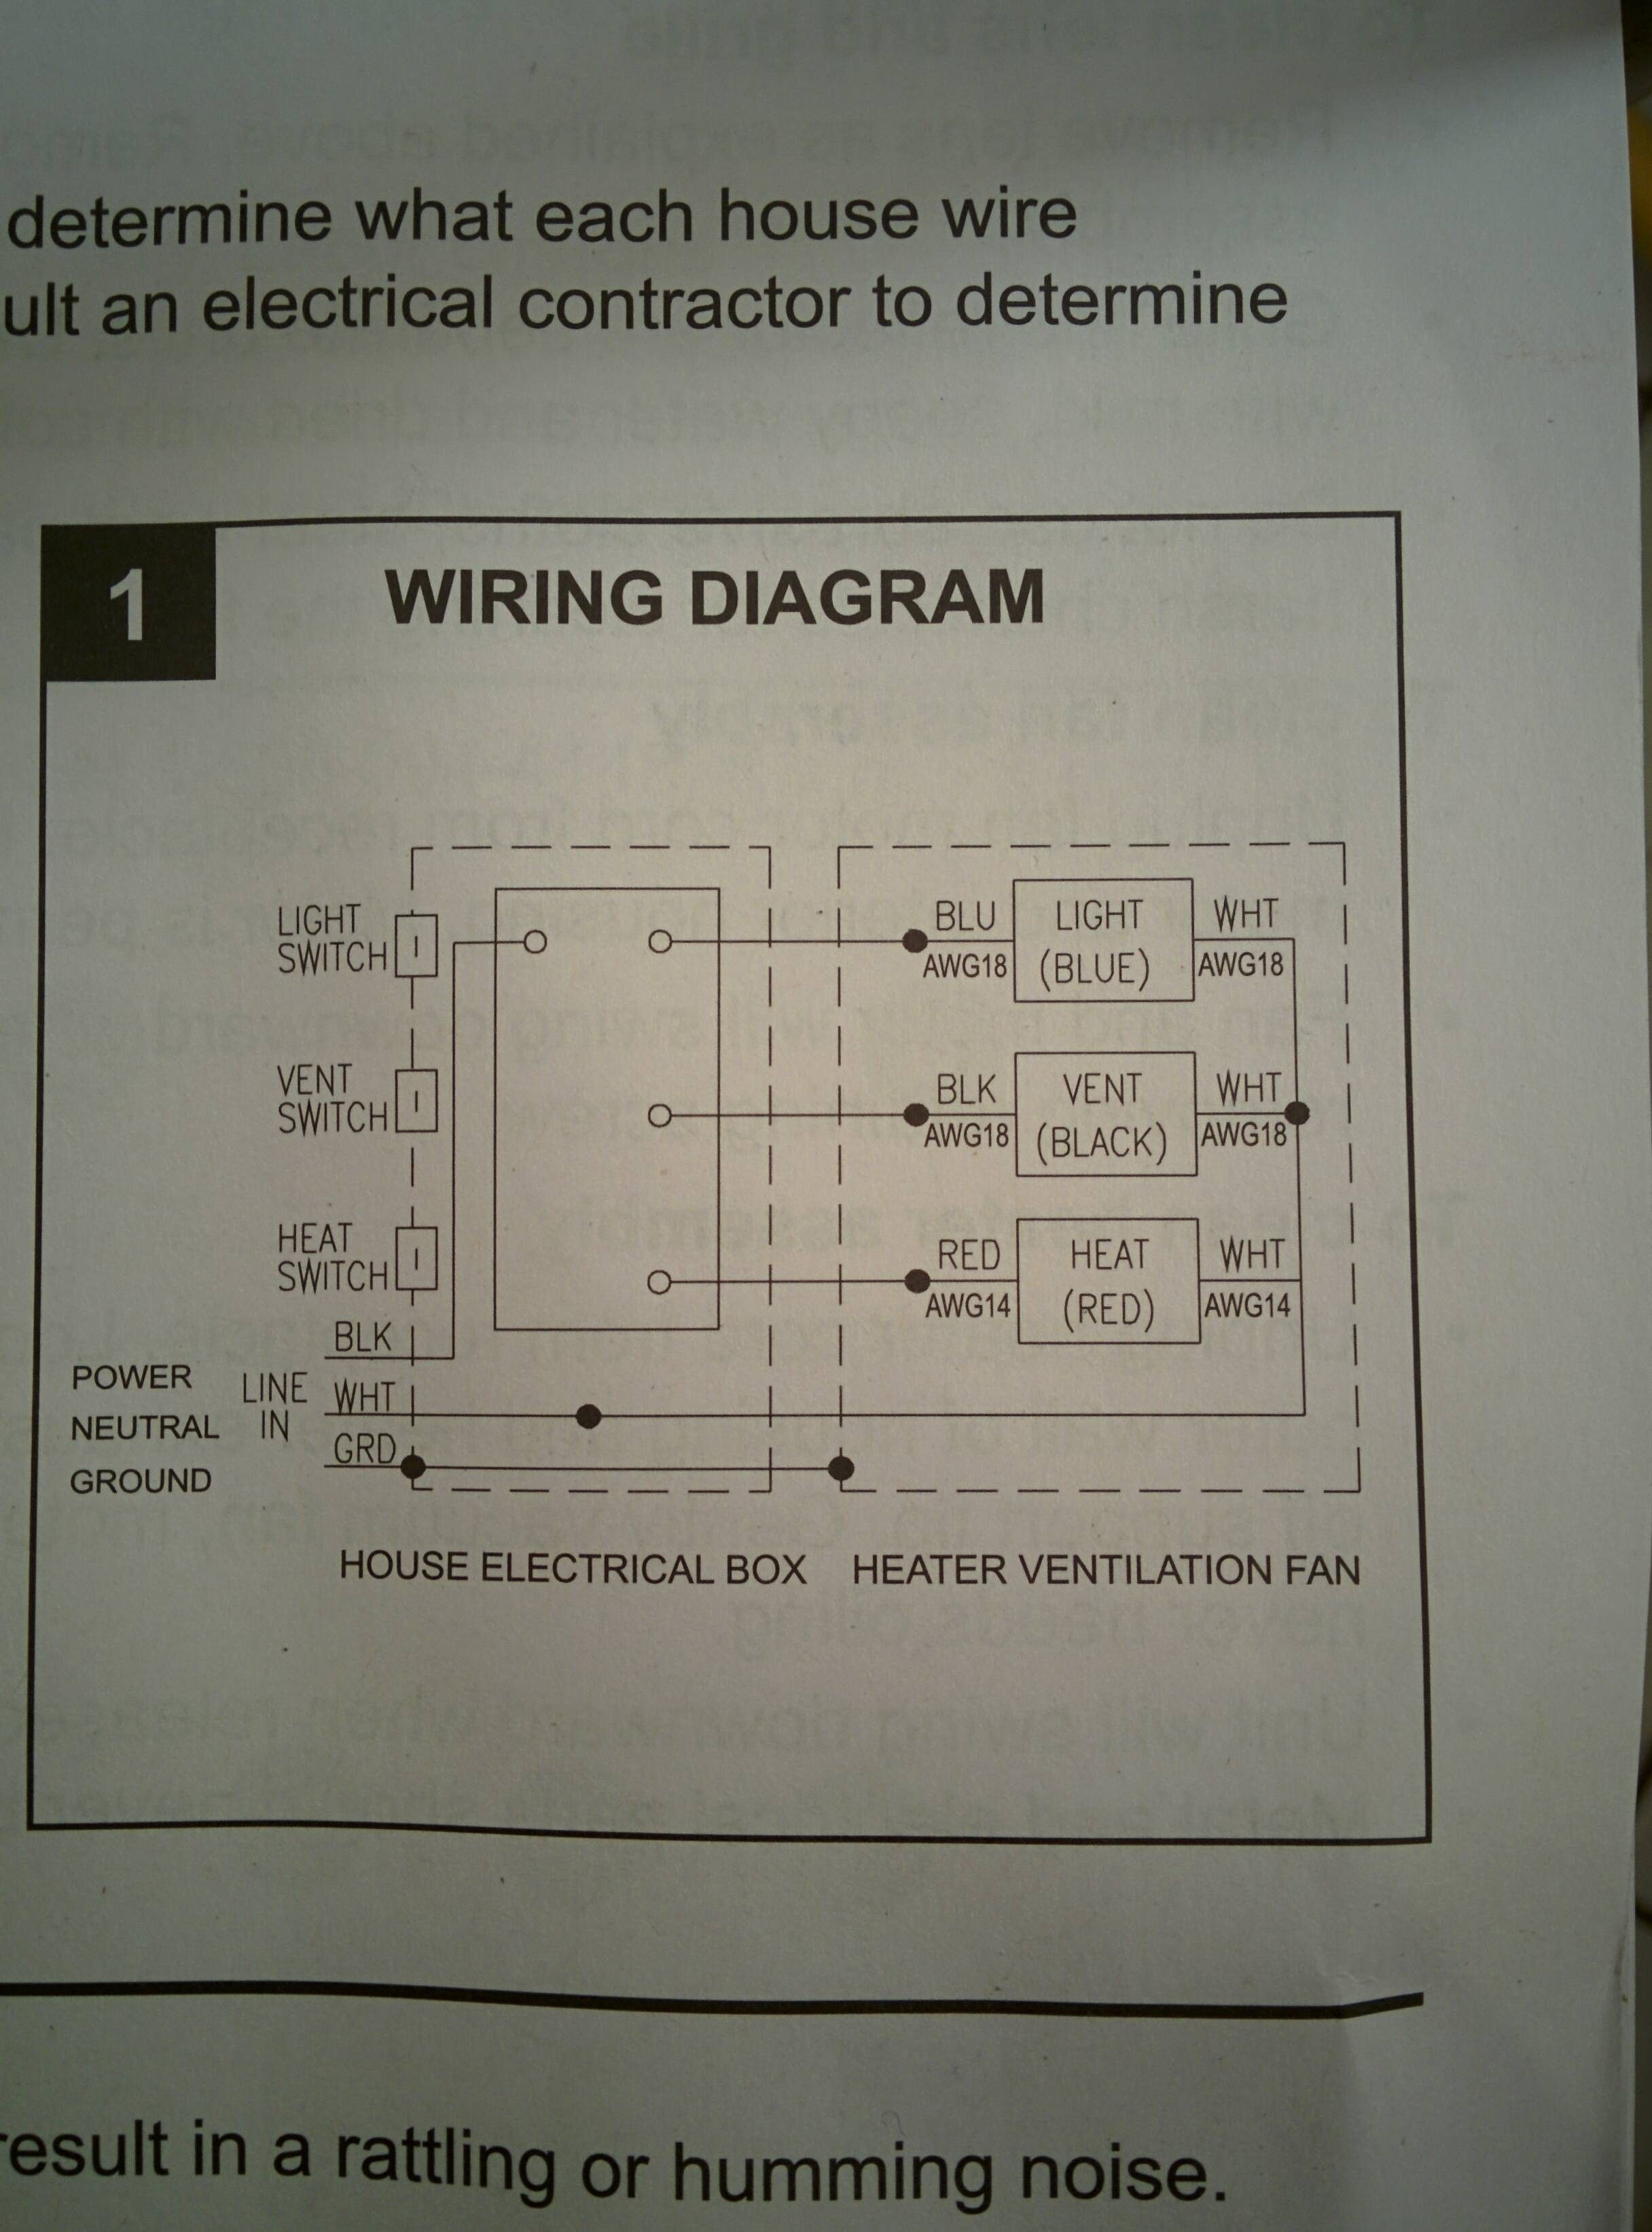 Unique Wiring Diagram for Extractor Fan with Timer #diagram ... on bathroom fan exploded view, bathroom electrical diagram, bathroom fan trouble shooting, kitchen wiring diagram, hvac wiring diagram, bathroom wiring diagram with vent, bathroom fan frame, broan wiring diagram, air purifier wiring diagram, ceiling fan diagram, bathroom fan switch, bathroom blower fan, lighting wiring diagram, accessories wiring diagram, bathroom fan plug, humidity control wiring diagram, motor wiring diagram, bathroom wiring code, bathroom gfci wiring, bathroom fan exhaust,